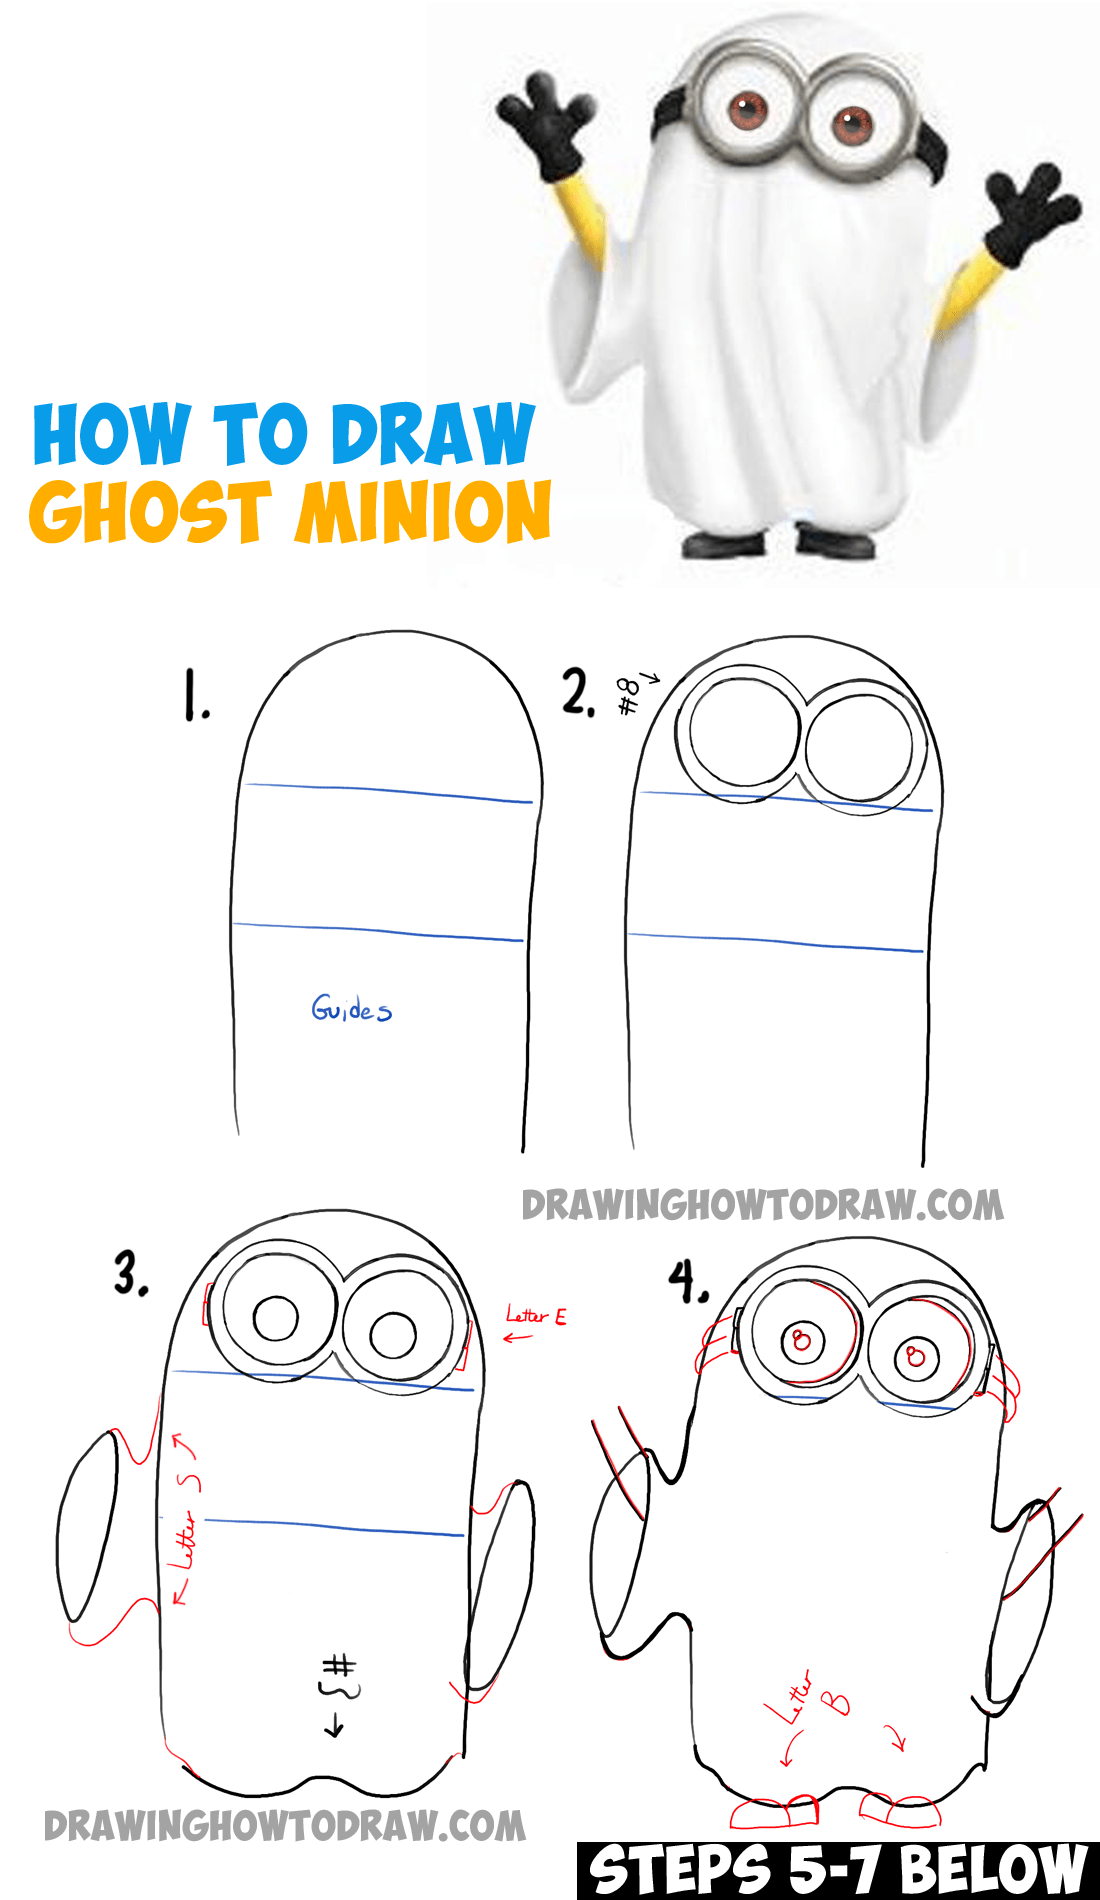 How to Draw Ghost Minions for Halloween (From The Minions Movie and Despicable Me) - Step by Step Drawing Tutorial for Kids